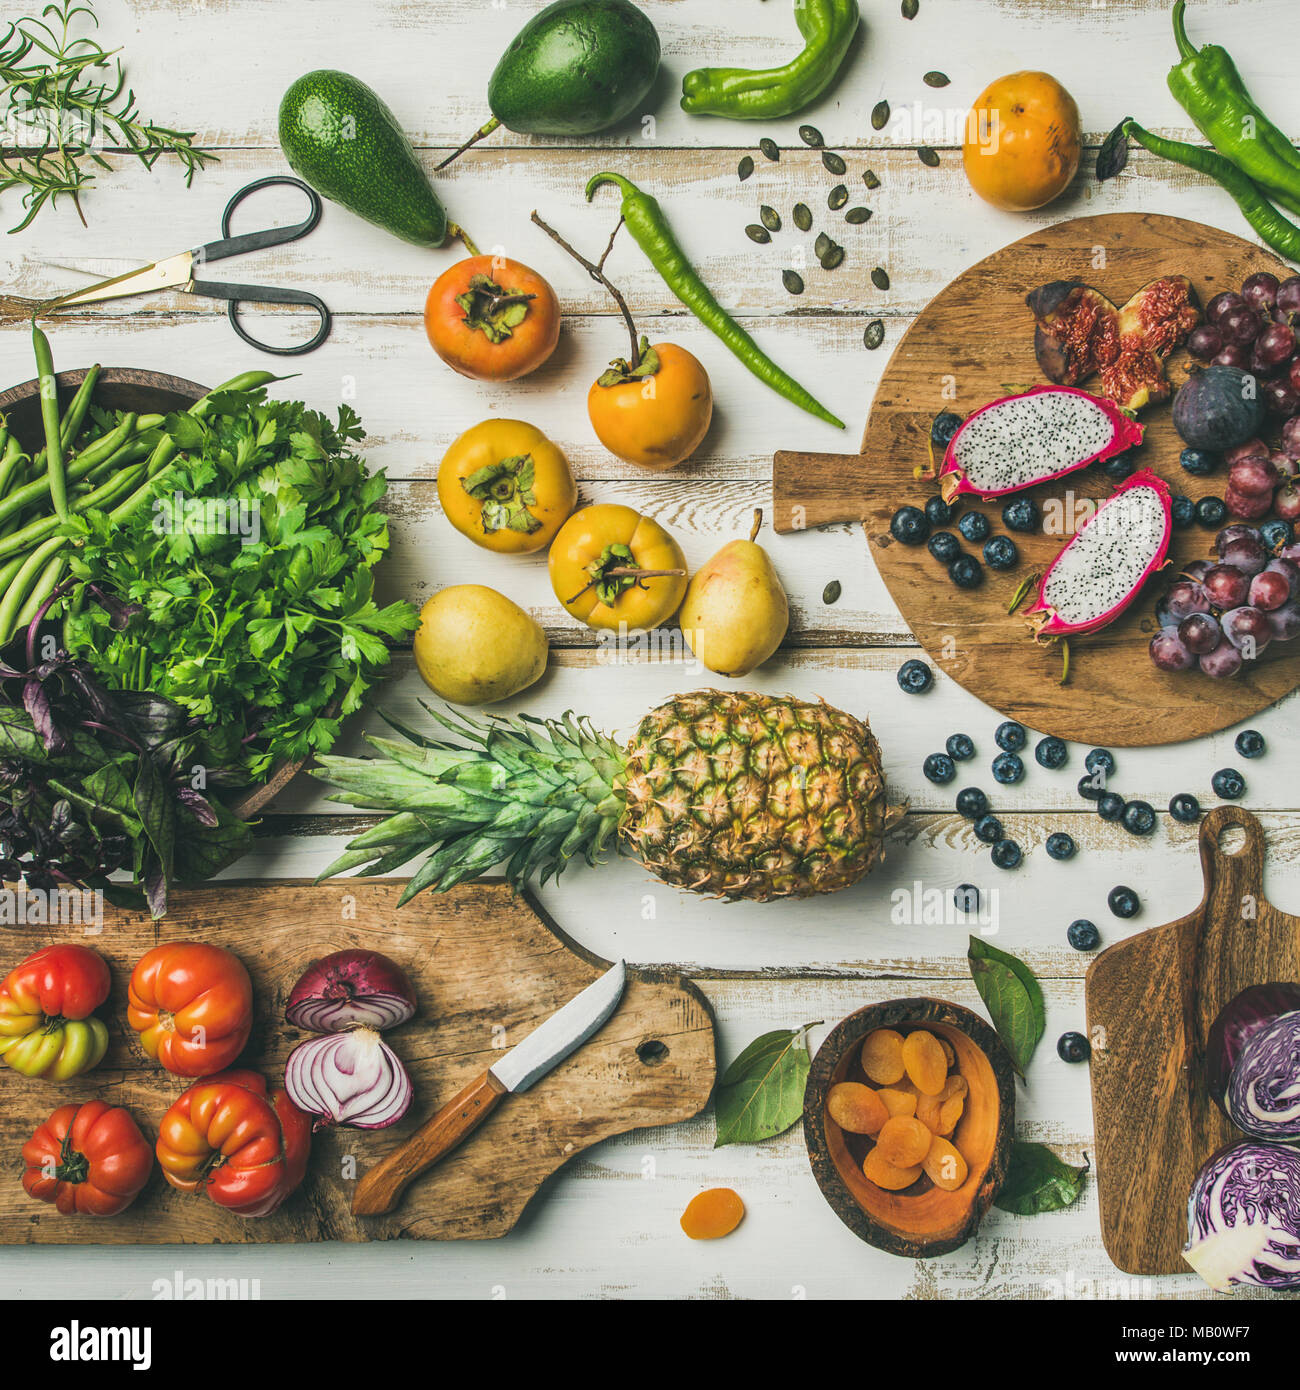 Helathy vegan food cooking background with uncooked fruites and vegetables Stock Photo